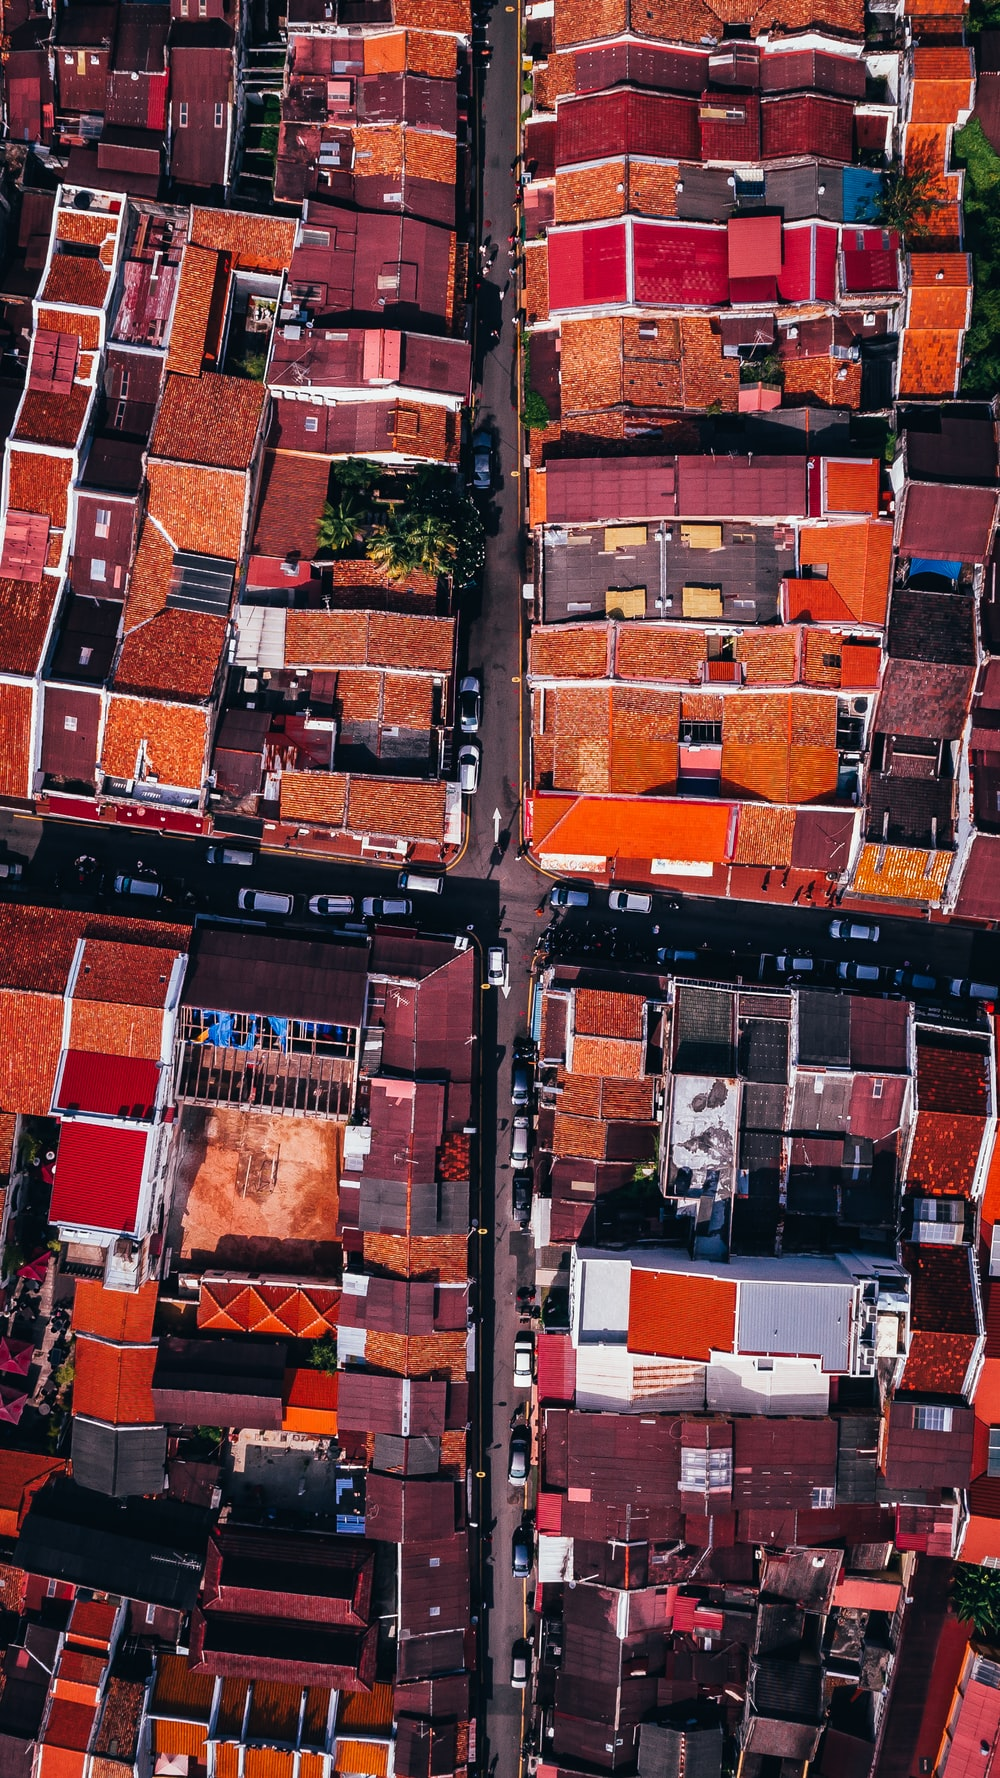 aerial photograph of orange and red roof cityscape